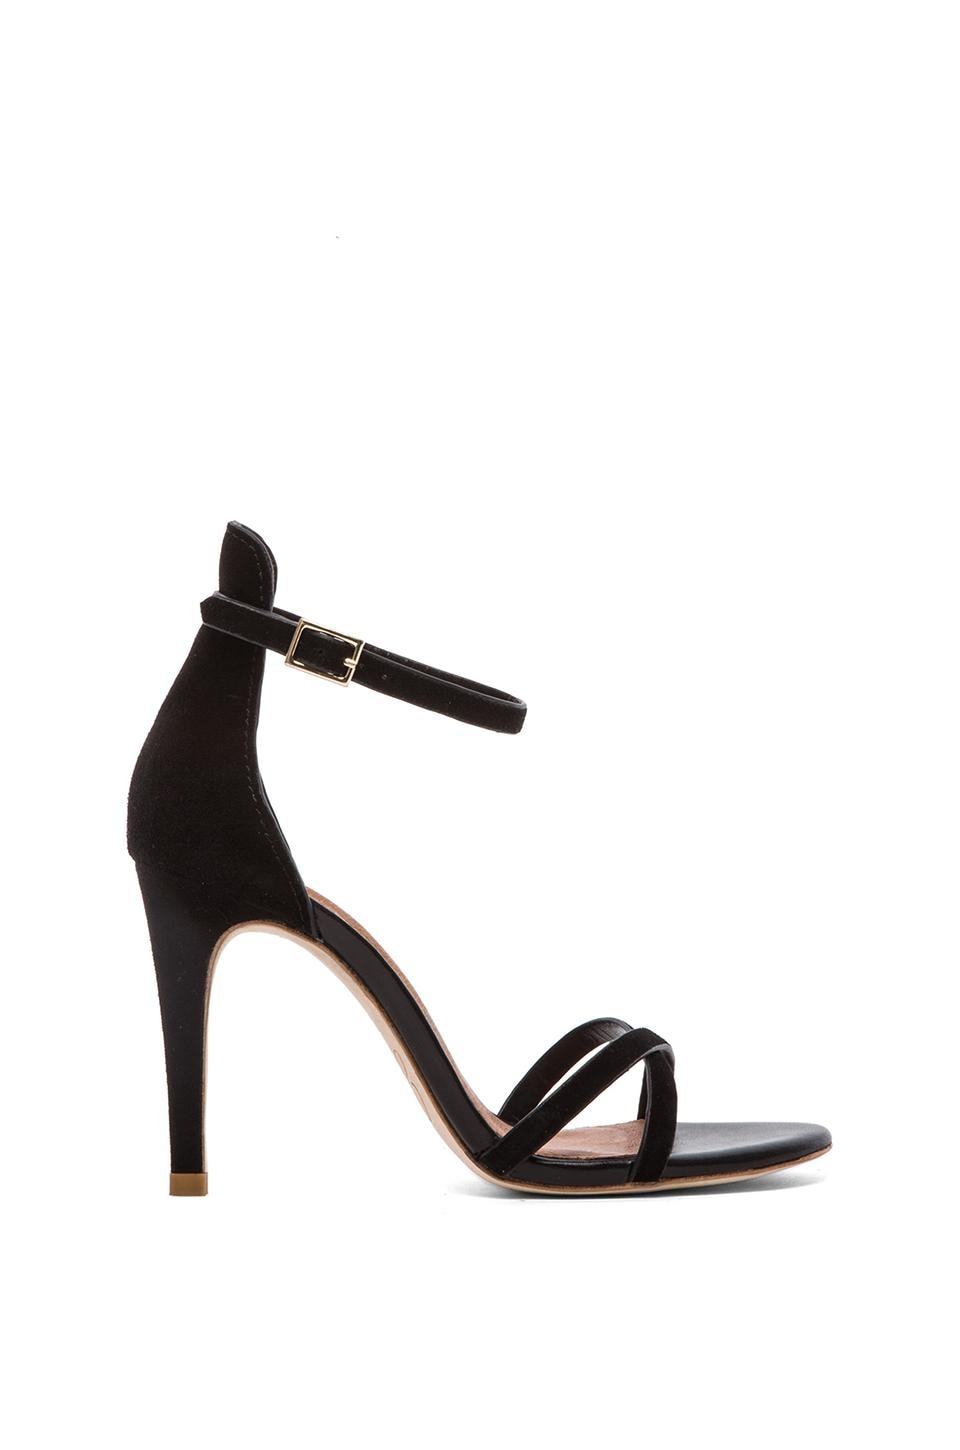 Joie Jade Heel in Black